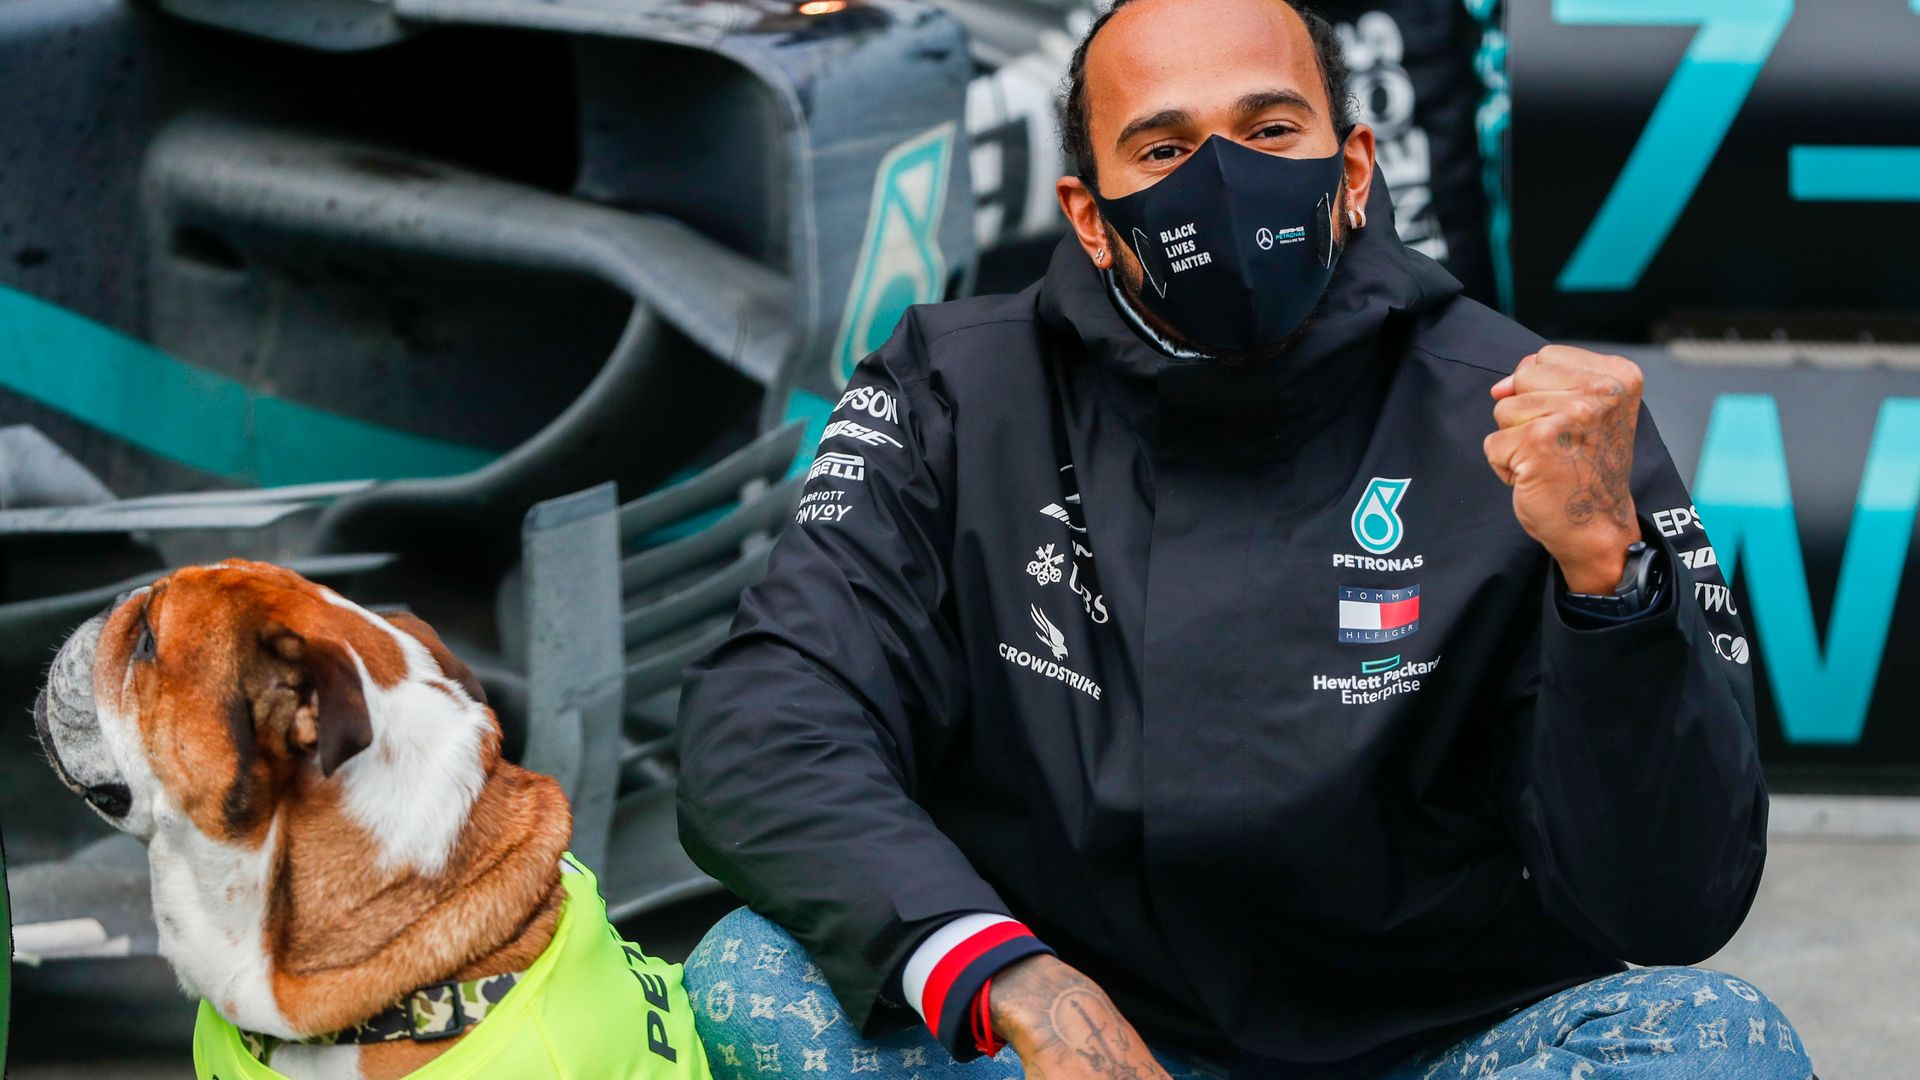 History-maker Hamilton: I'm just getting started